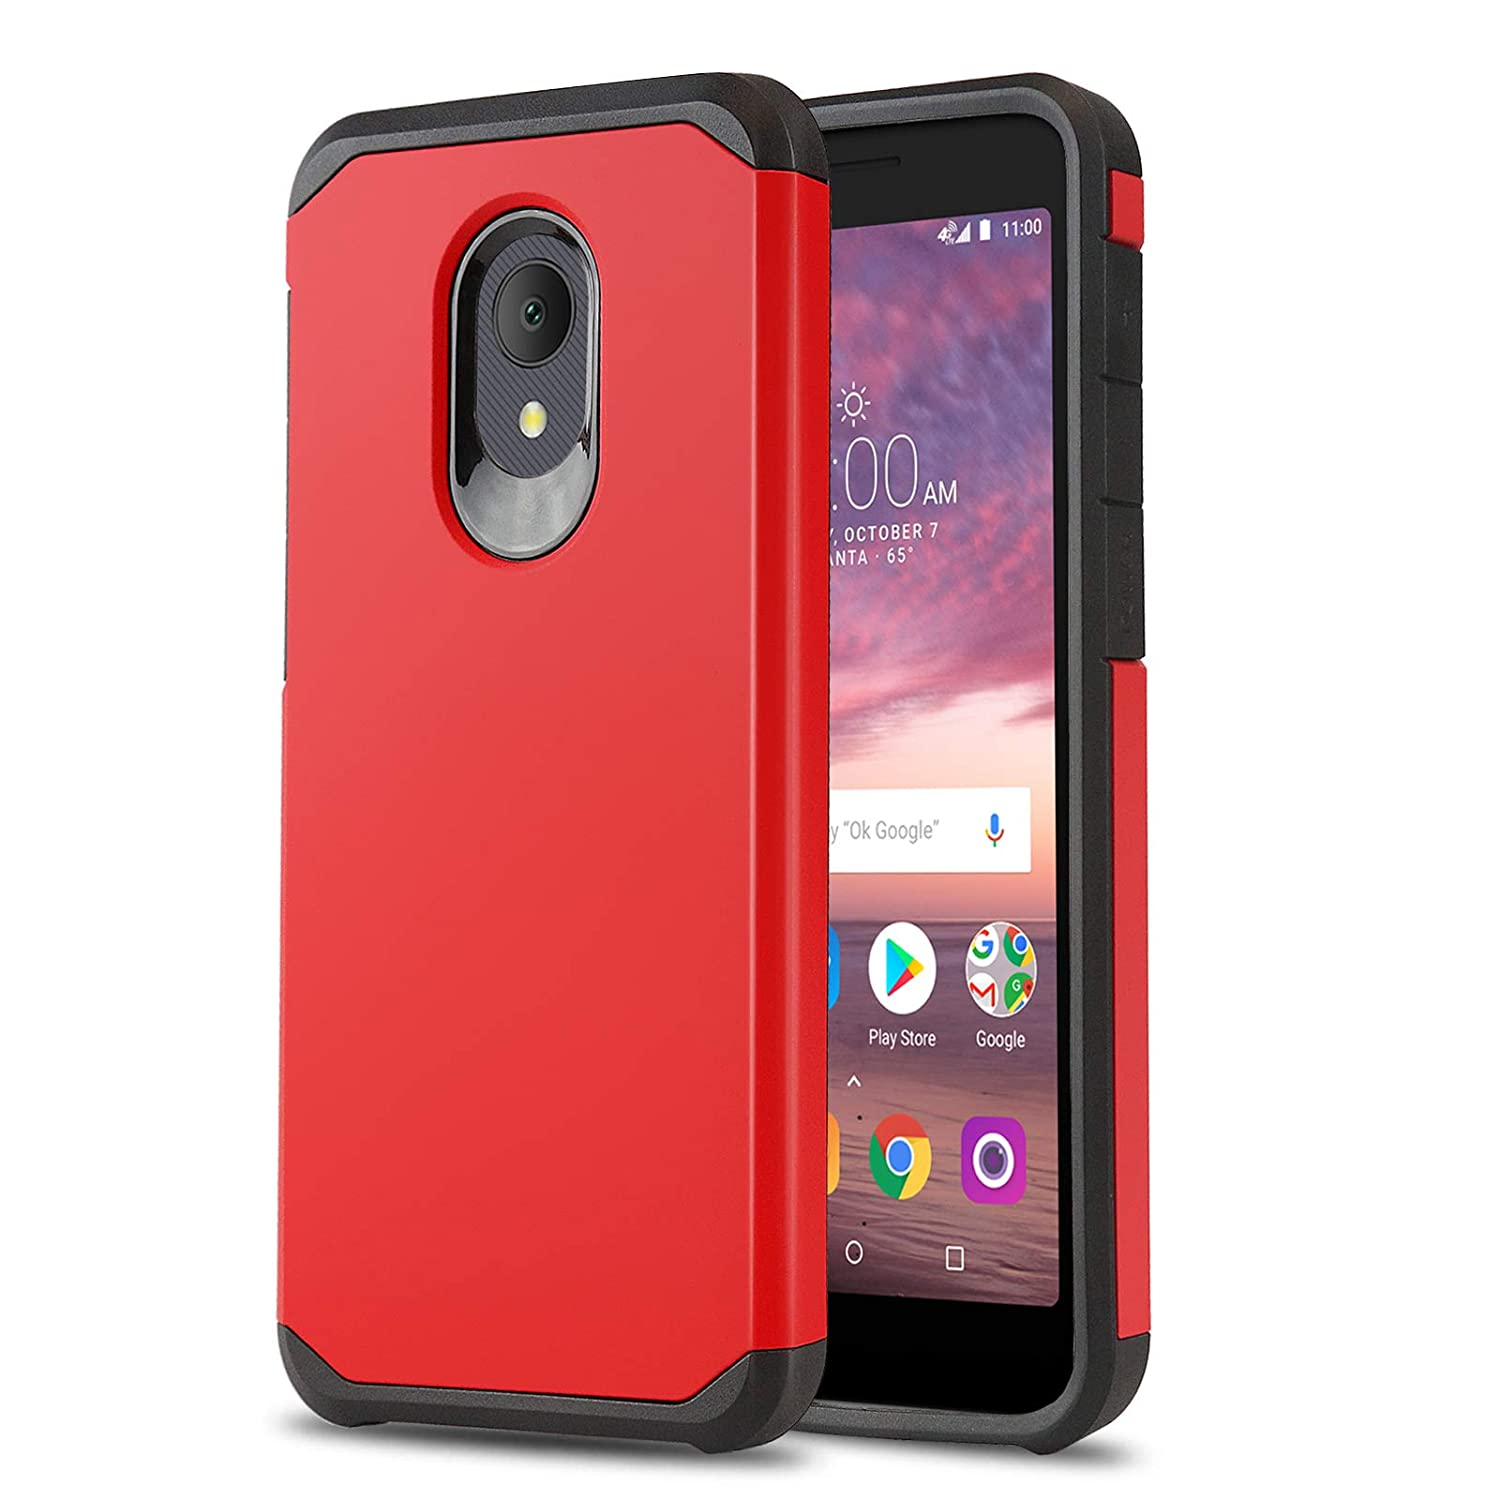 Phone Case for [ALCATEL TCL LX (A502DL)], [DuoTEK Series][Red] Shockproof  Cover [Impact Resistant][Defender] for Alcatel TCL LX (Tracfone, Simple